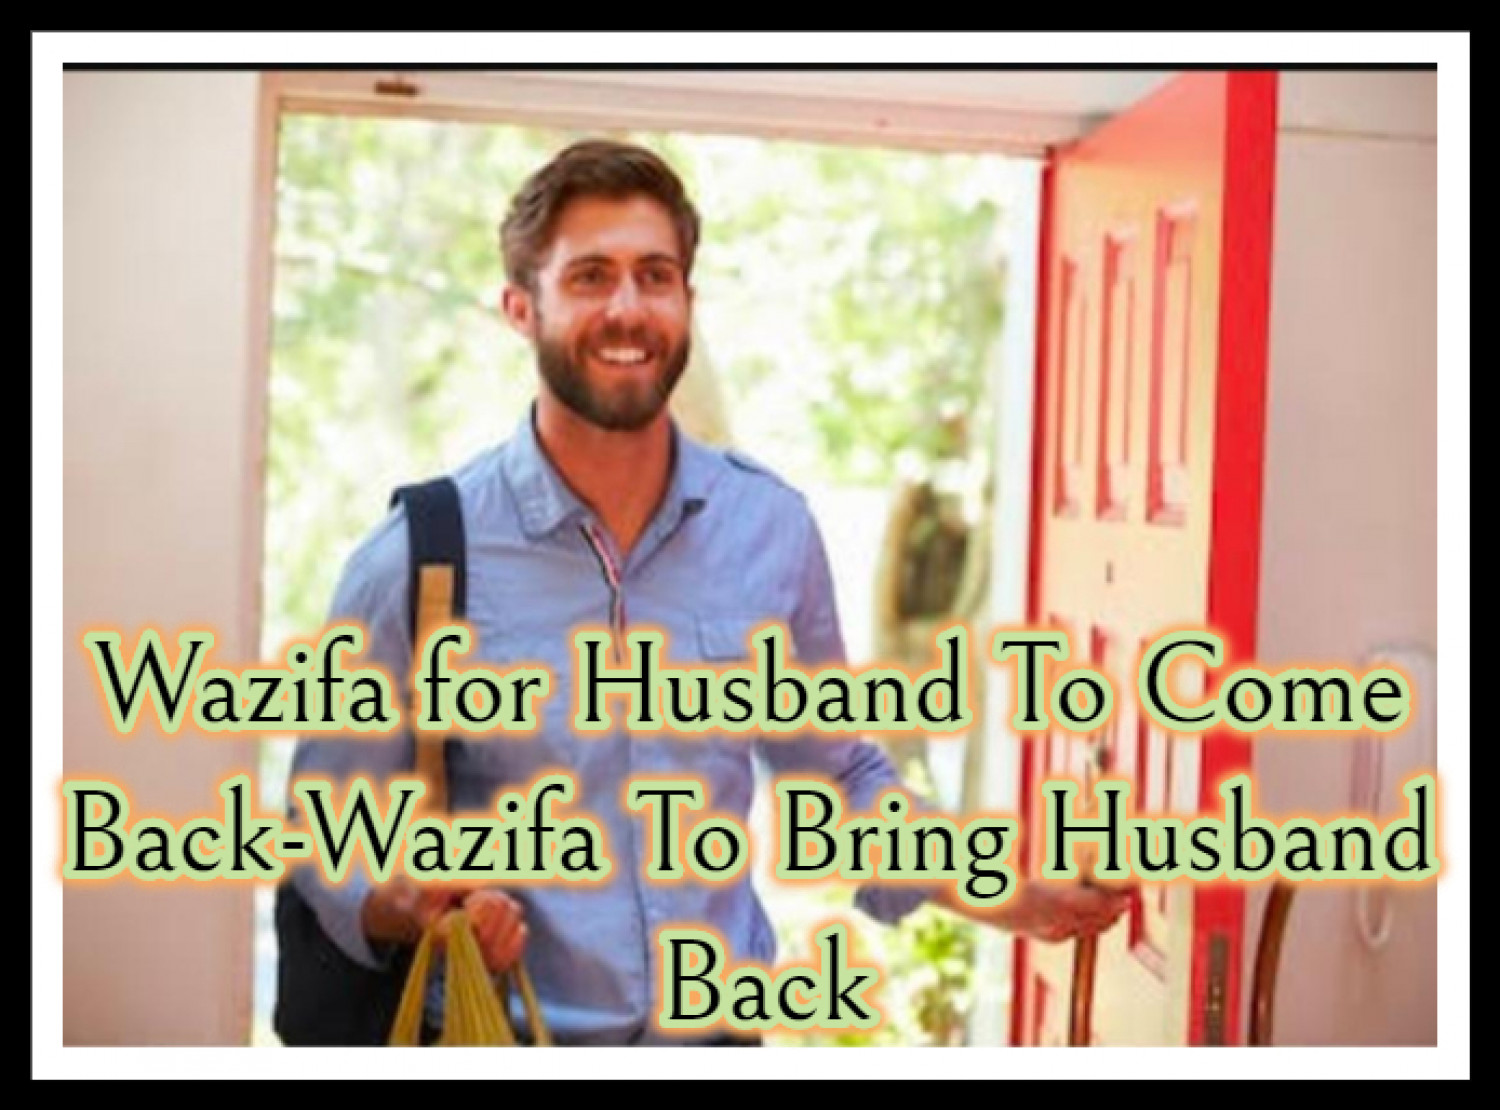 Wazifa To Make Husband Crazy In Love - Wazifa For Husband To Come Back Infographic